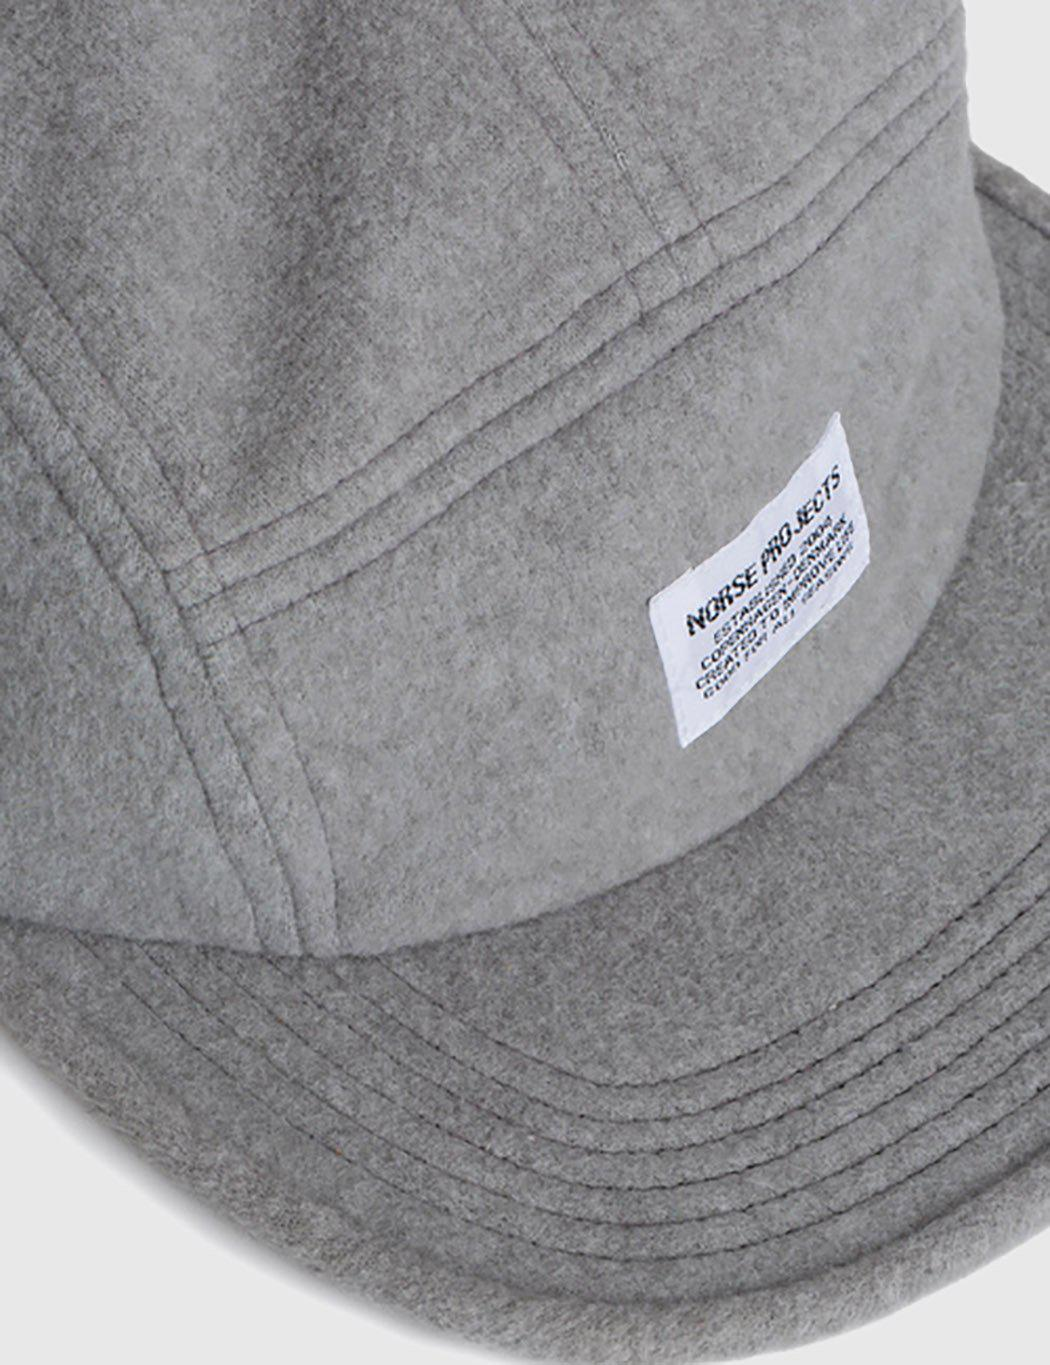 56ece3e4f7f Lyst - Norse Projects Polartec 5 Panel Cap in Gray for Men